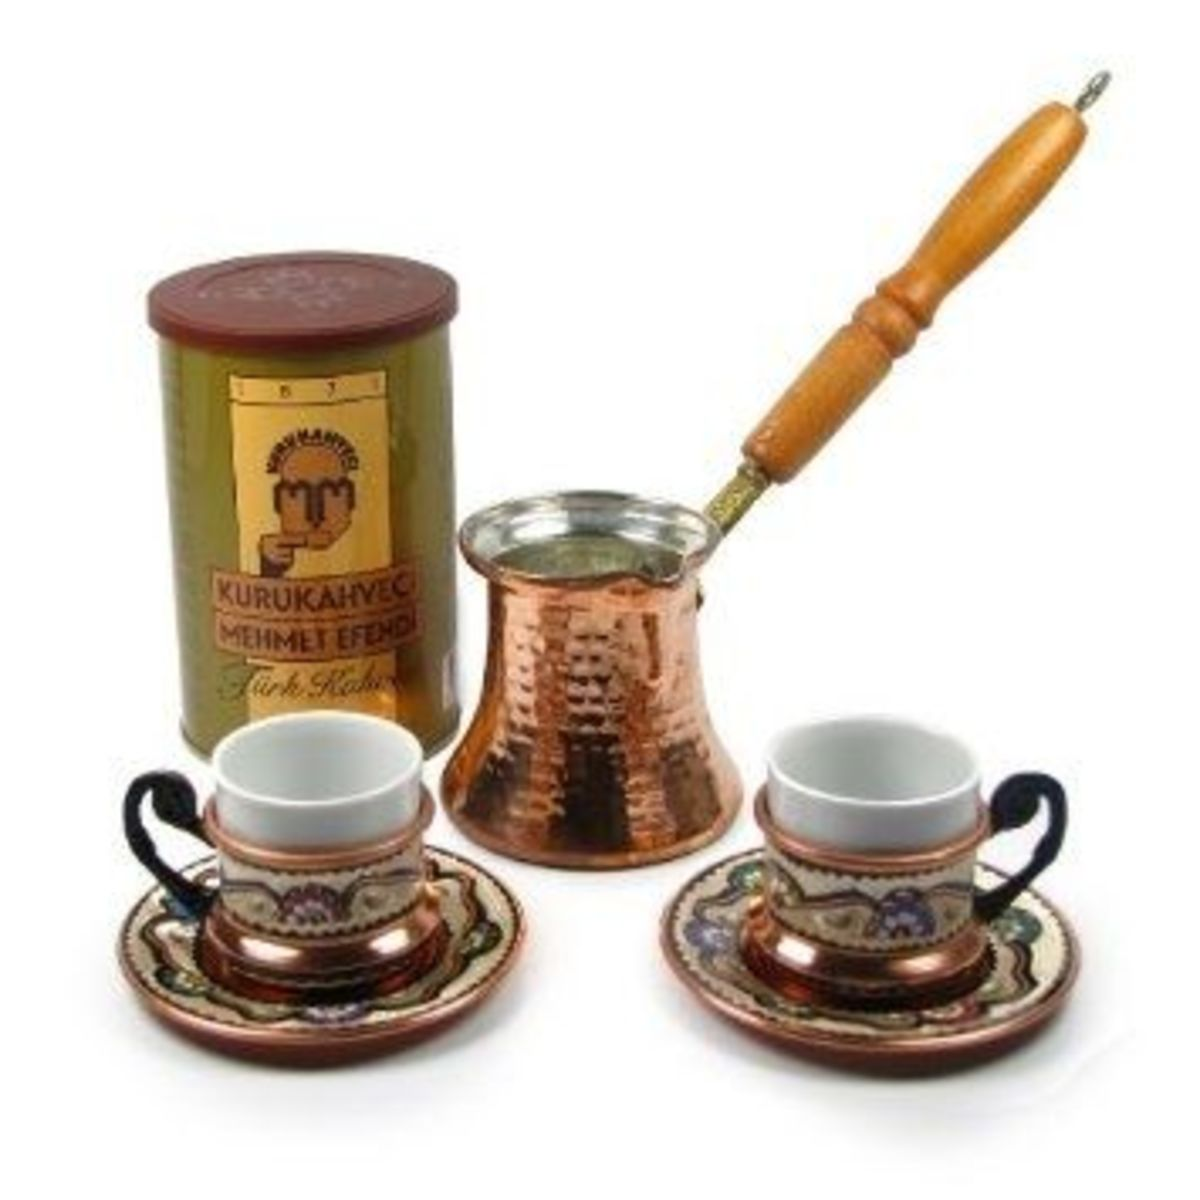 Here's a Turkish Coffee Set Made By Anatolian Artists.  A Great Gift For Turkish Coffee Lovers Or Anyone Who Collects Unique Coffee Makers.  Photo Credit Amazon.